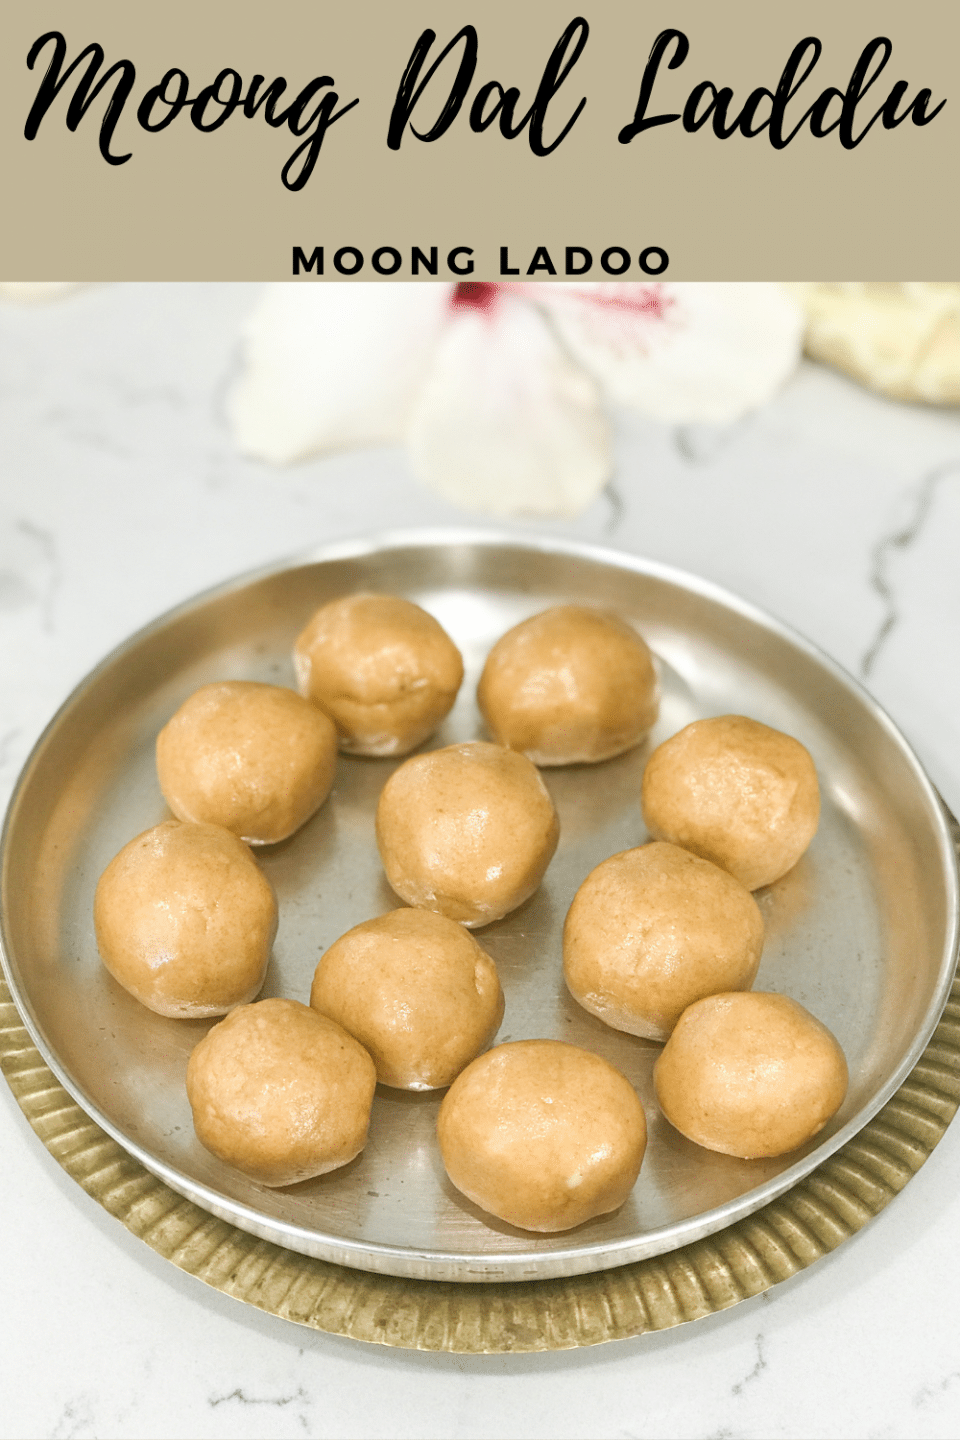 A silver plate filled with Moong laddu